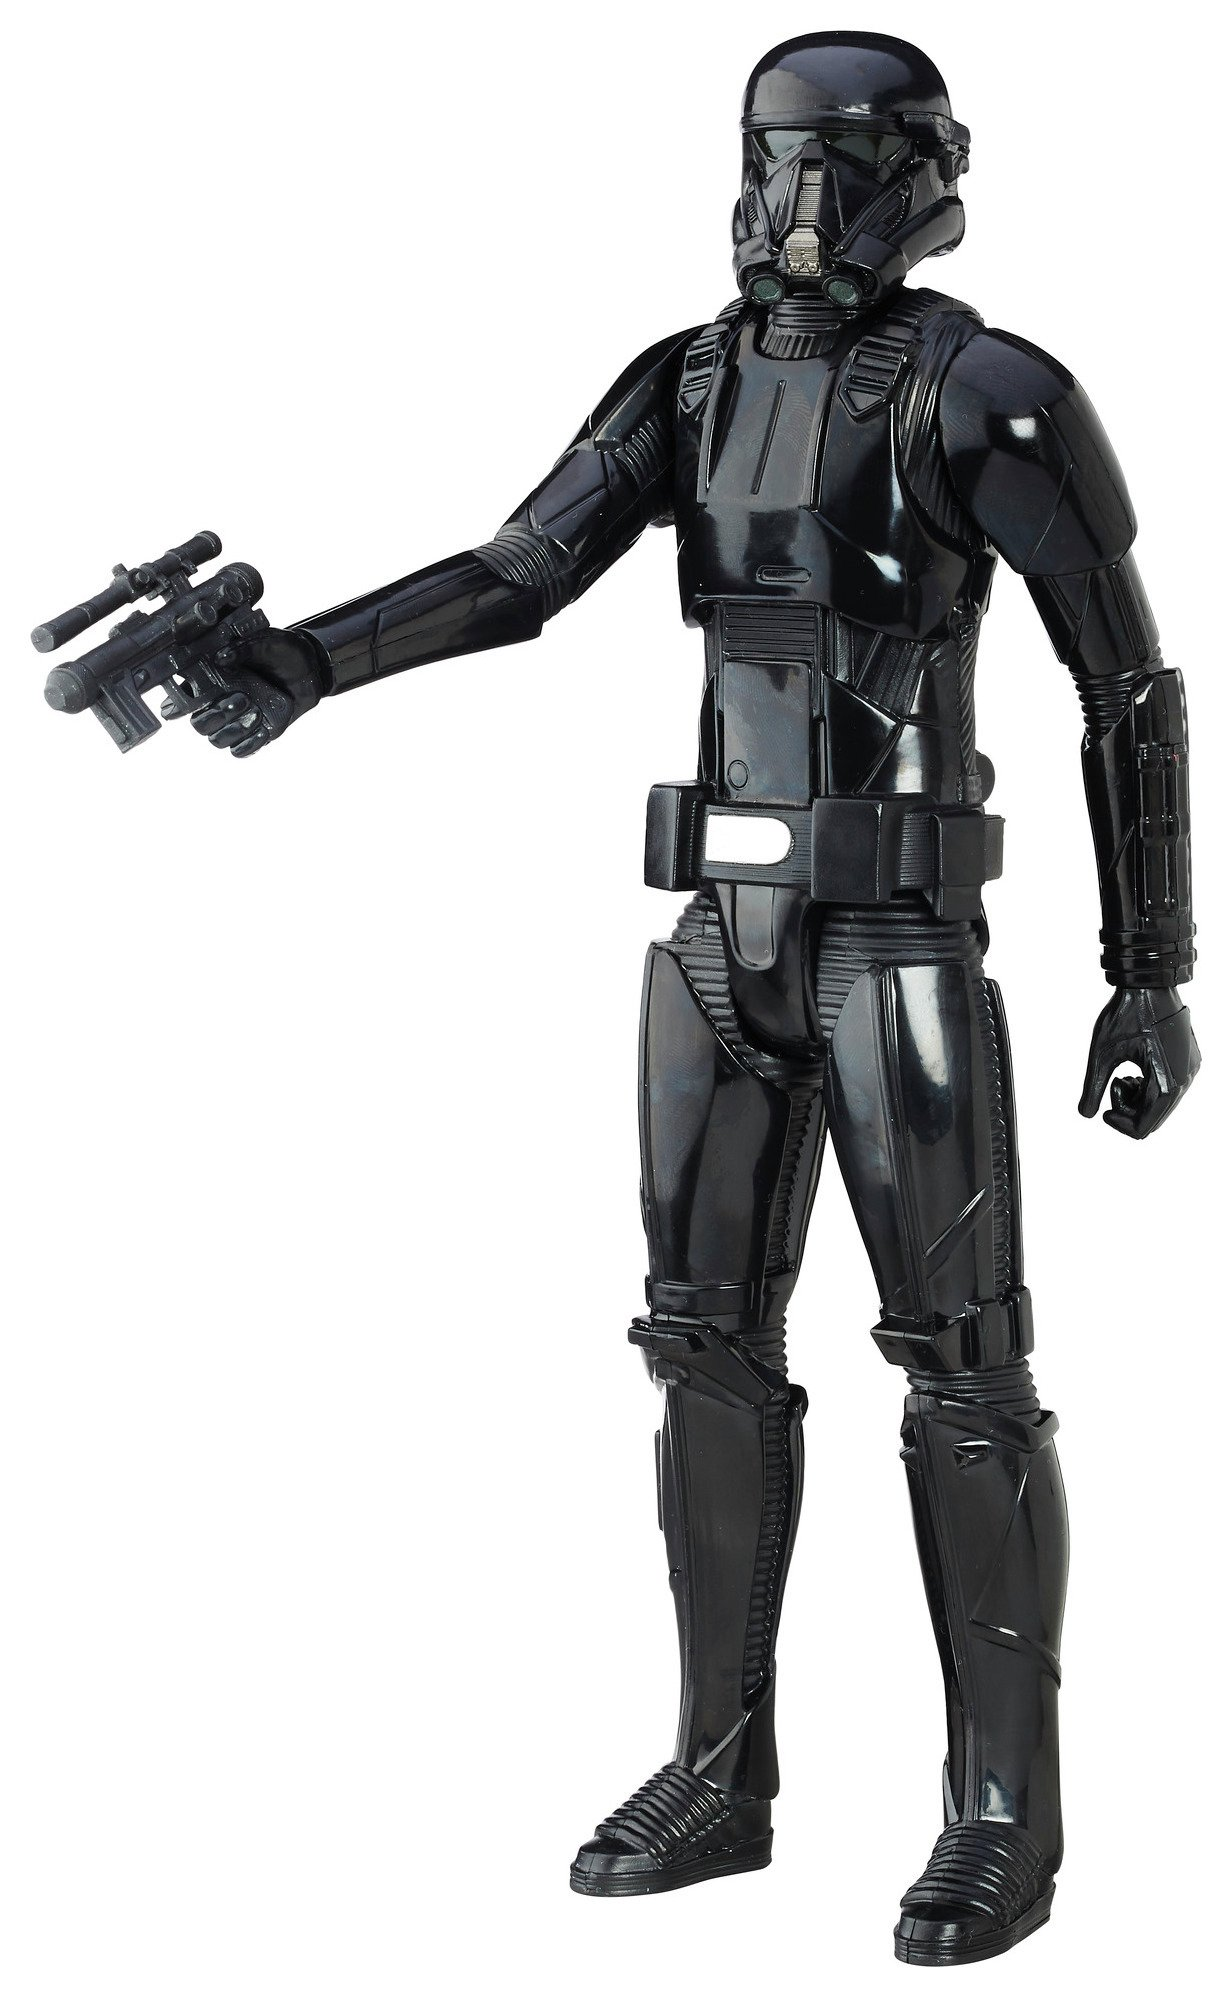 Star Wars Rogue One 12 Inch Imperial Death Trooper Figure